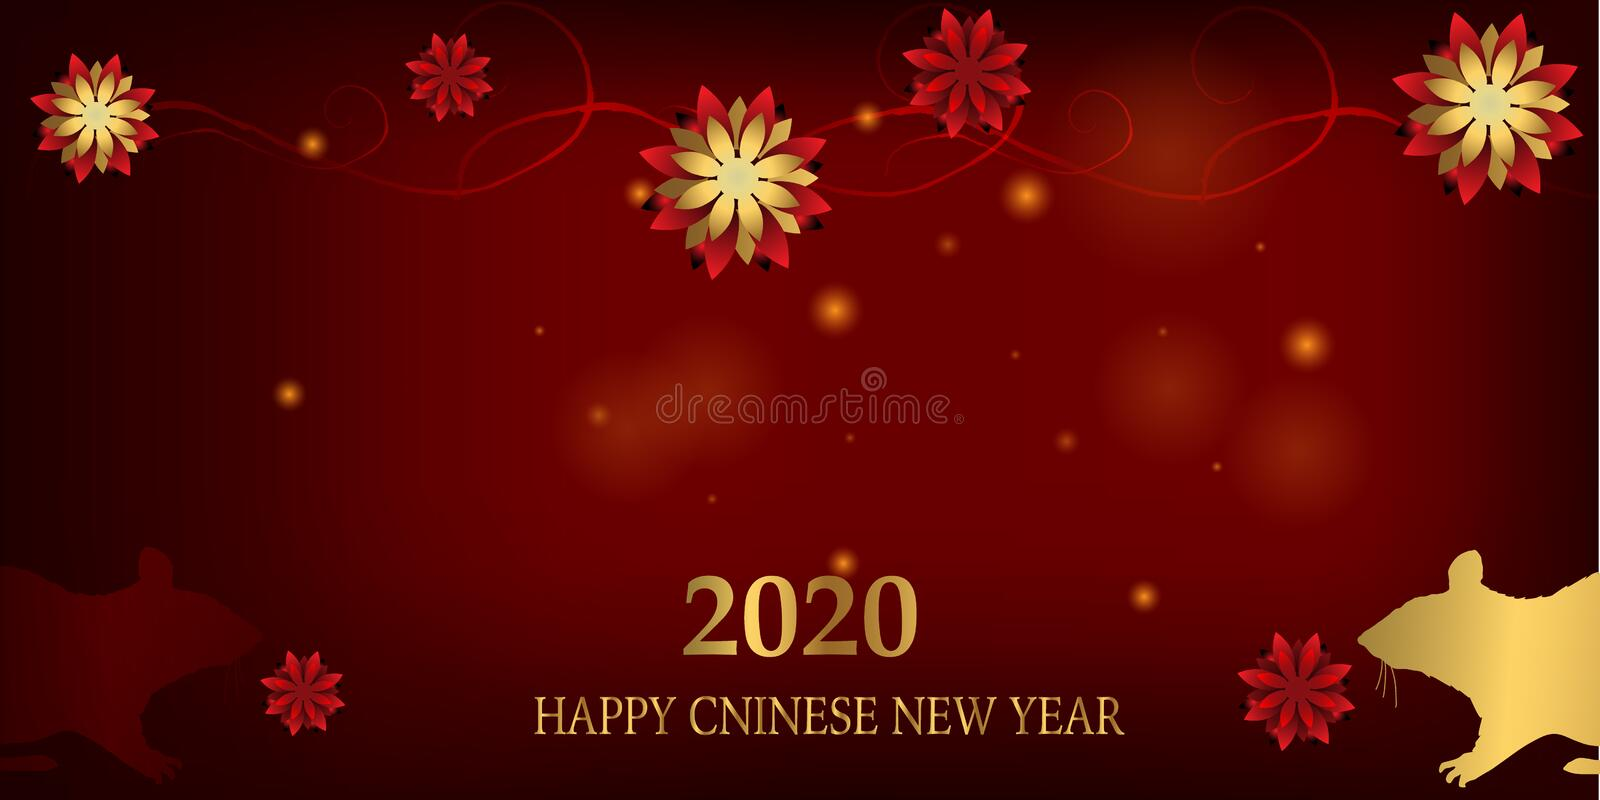 2020 Chinese New Year Rat zodiac sign. Red and gold festive background with rat royalty free illustration